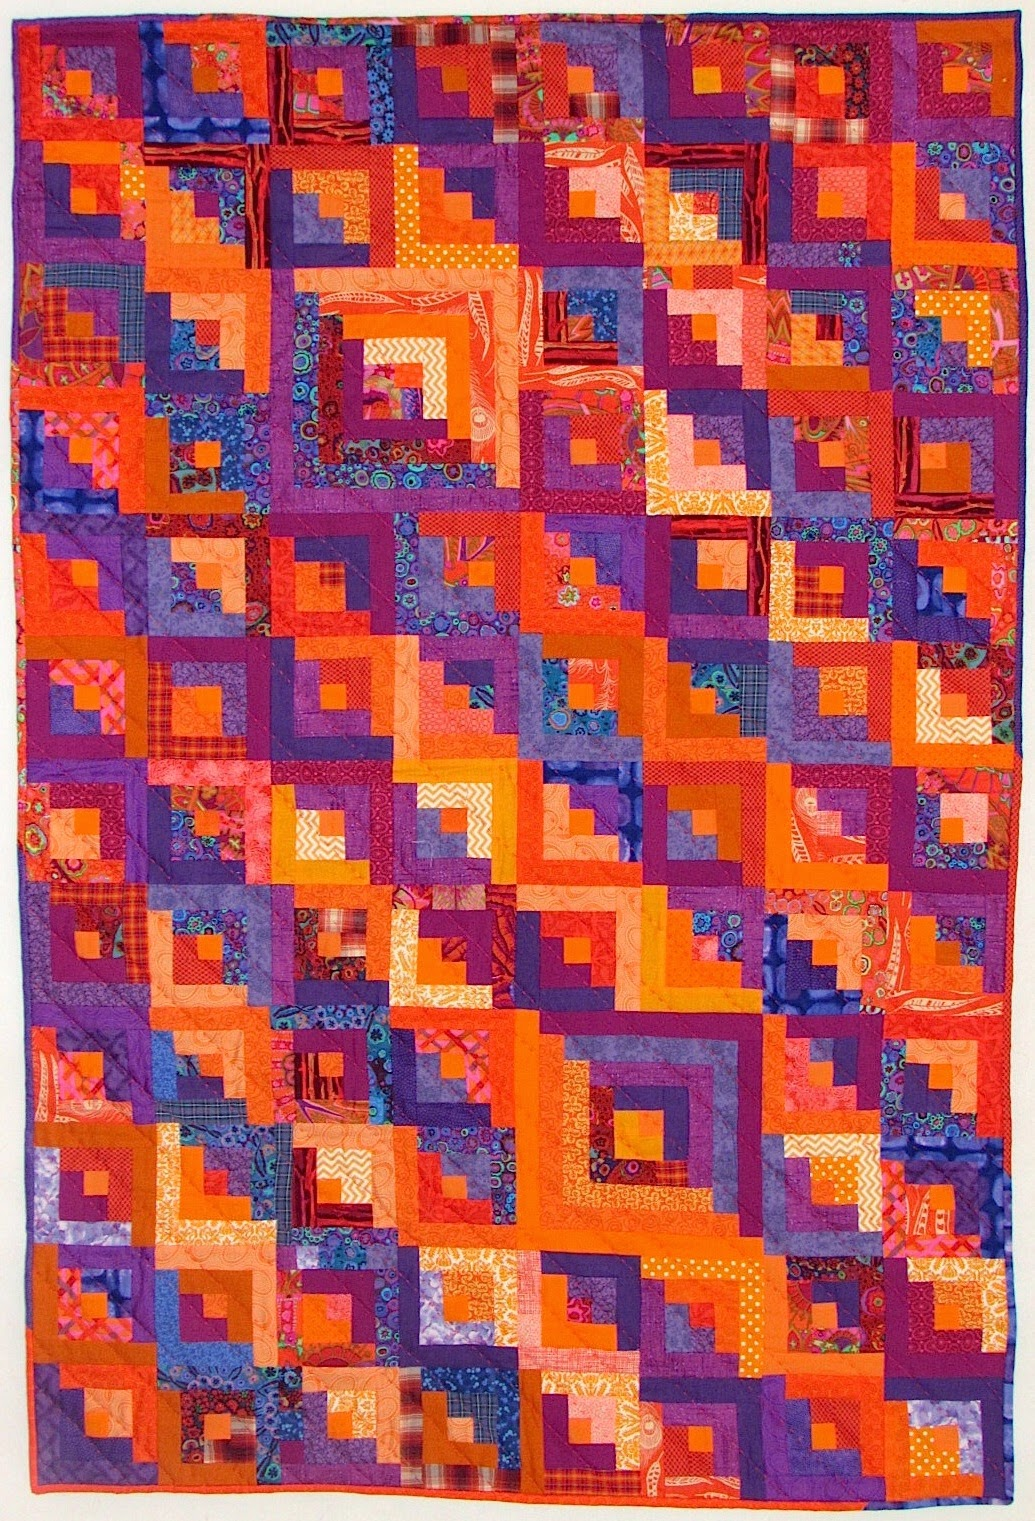 designs hyacinth peel orange dsc quilt